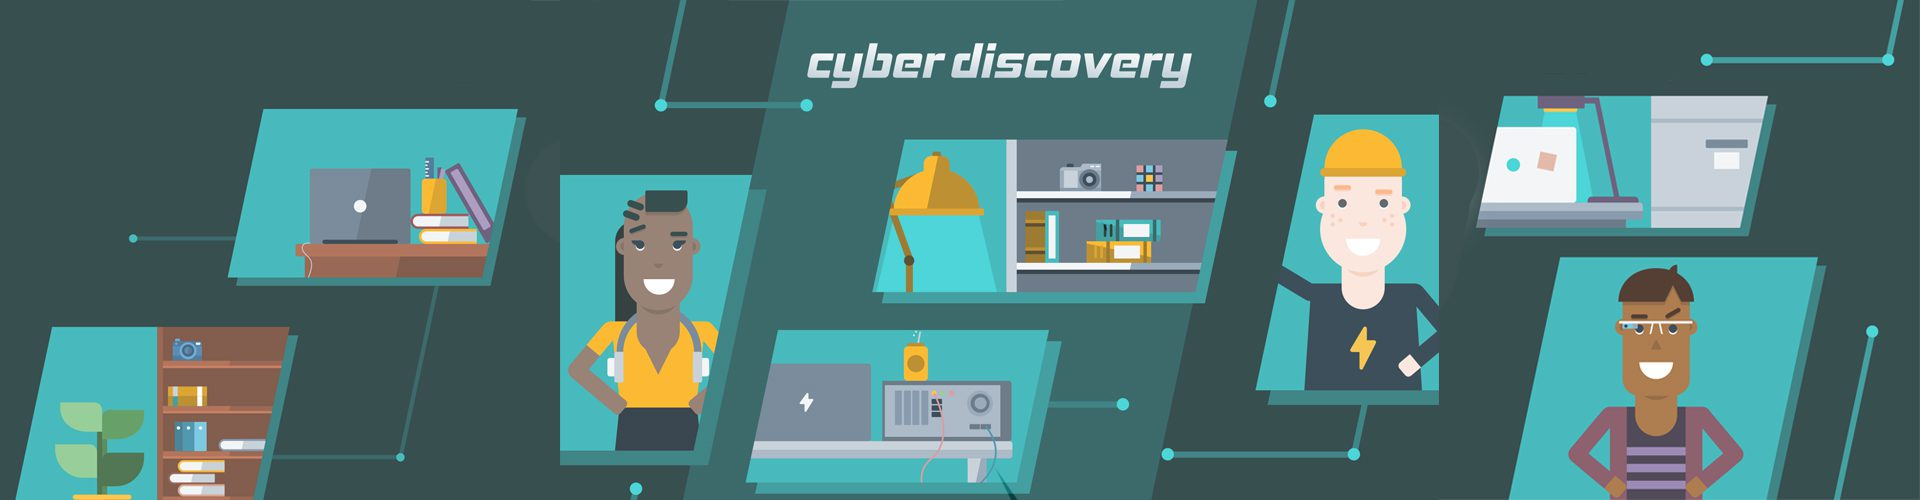 Cyber Discovery